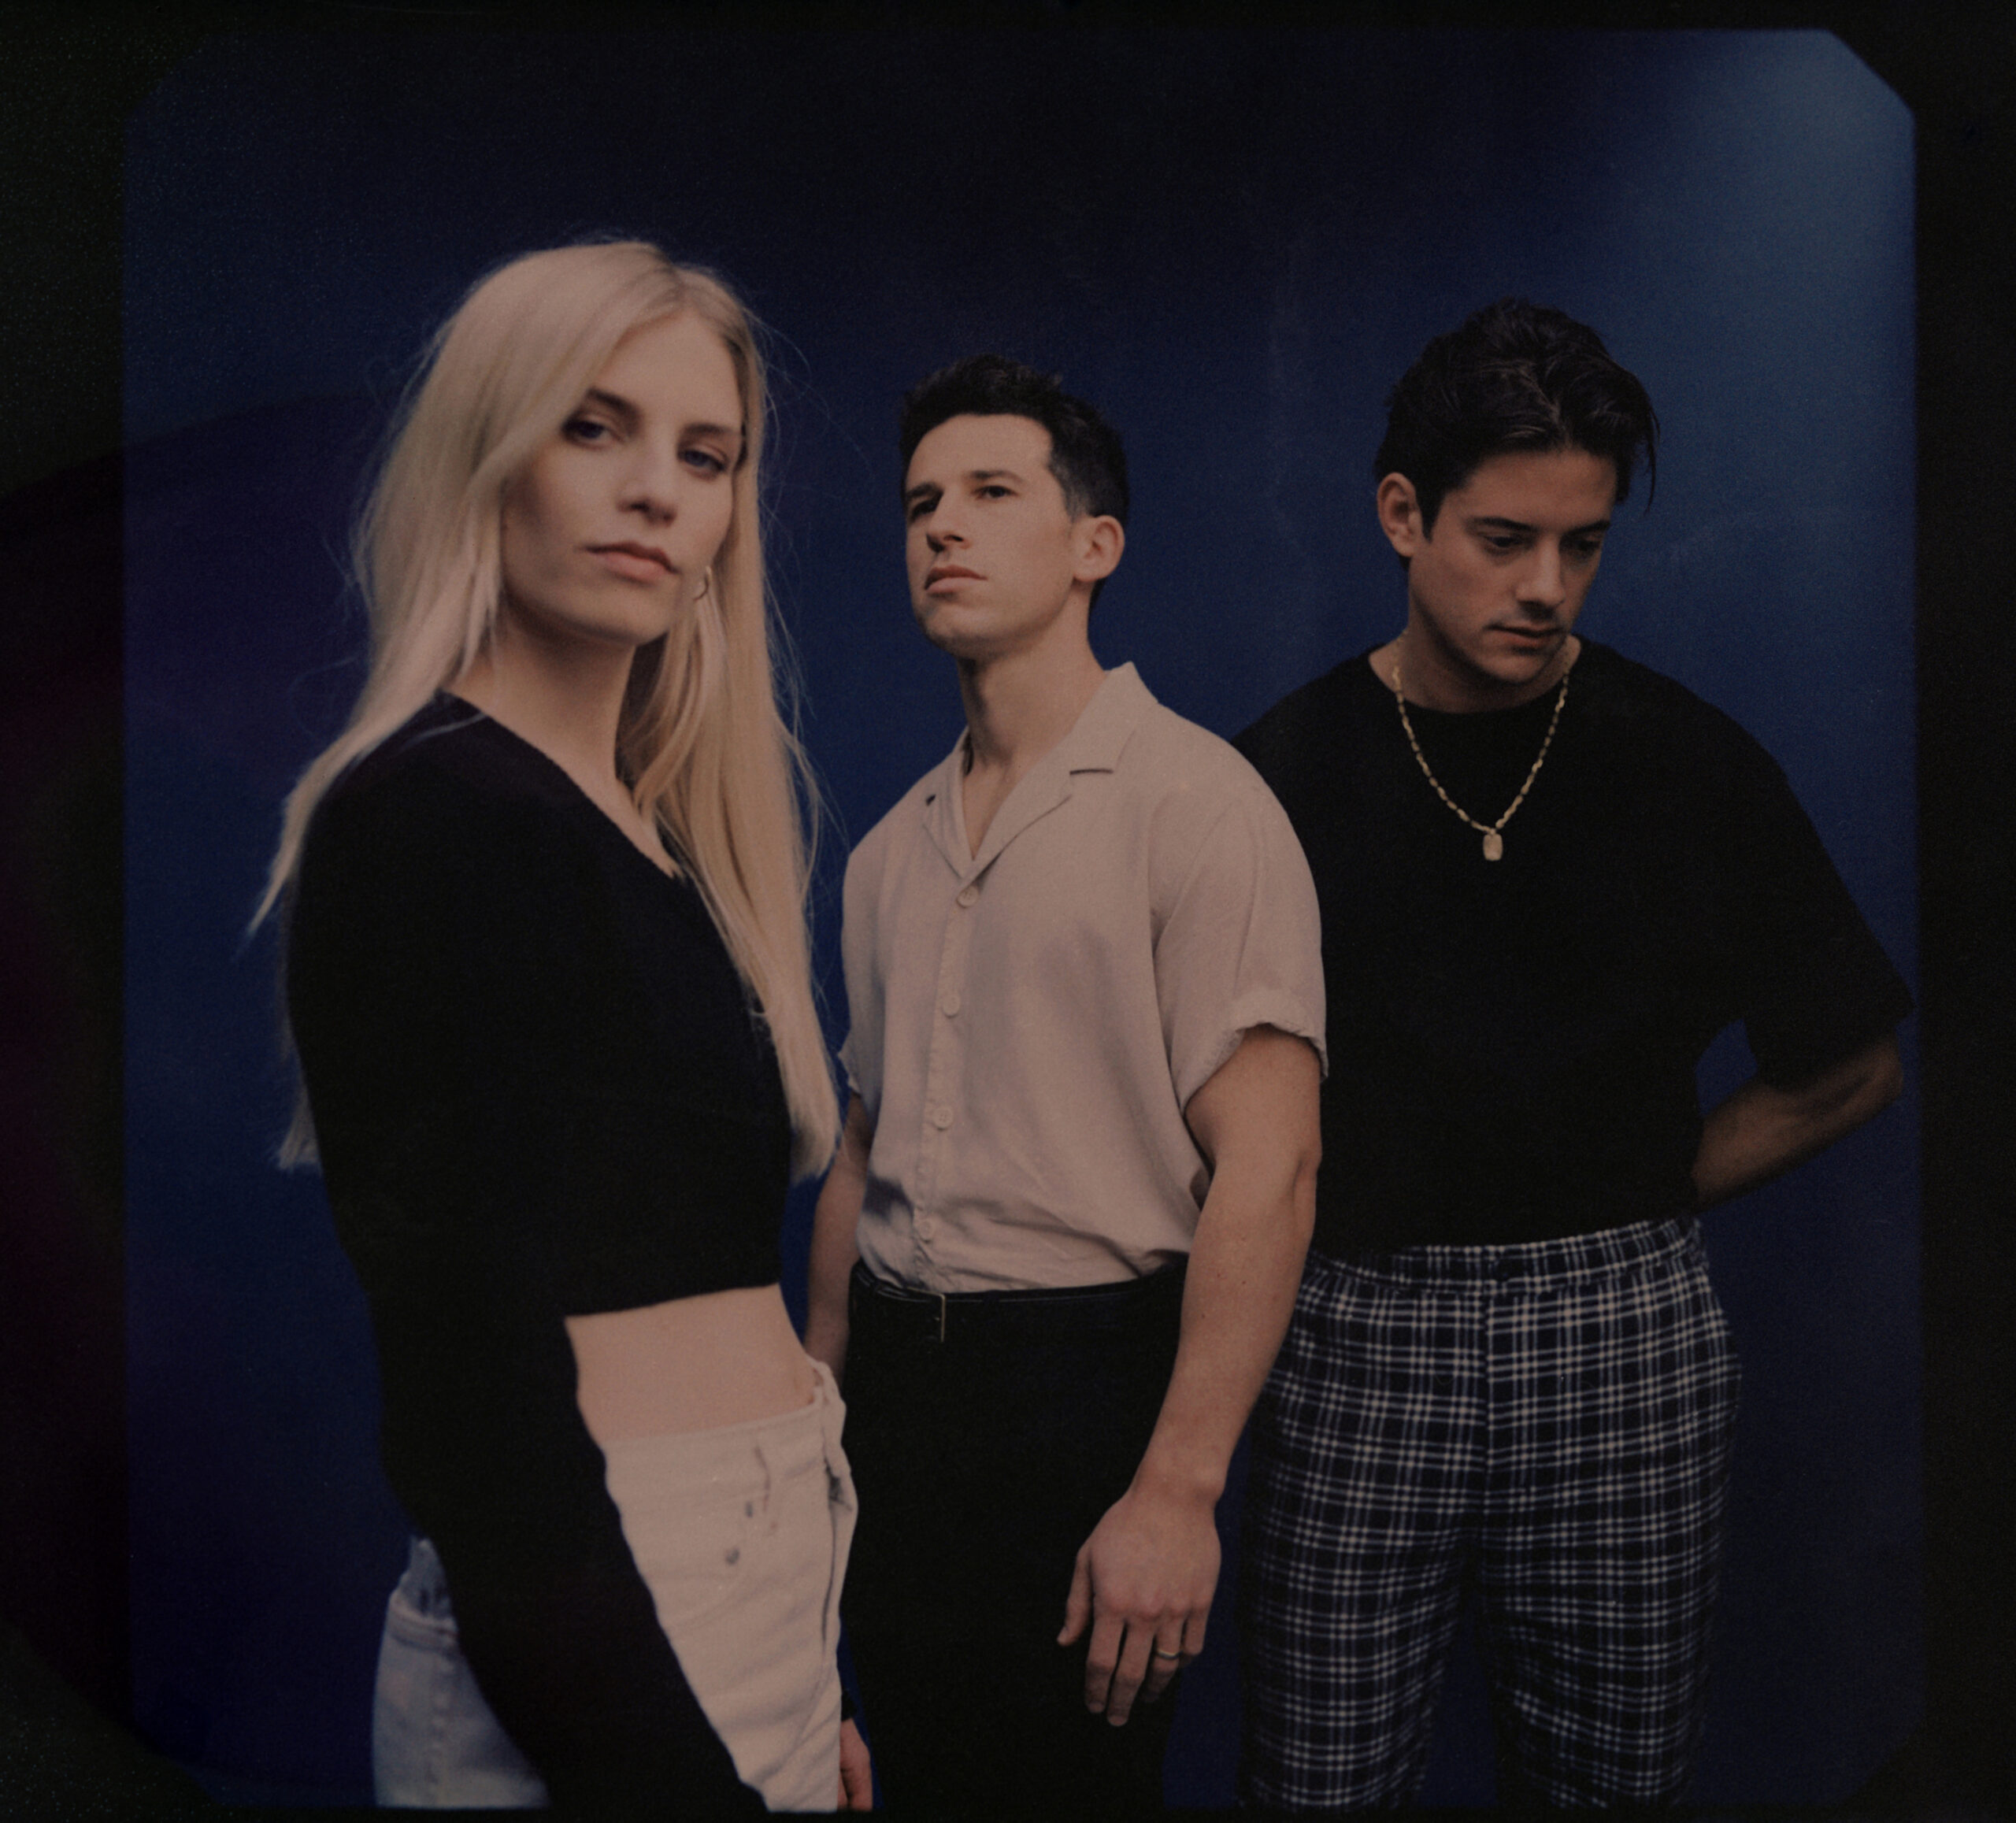 LONDON GRAMMAR RELEASE OFFICIAL VIDEO FOR 'HOW DOES IT FEEL' FROM THEIR FORTHCOMING THIRD STUDIO ALBUM 'CALIFORNIAN SOIL'